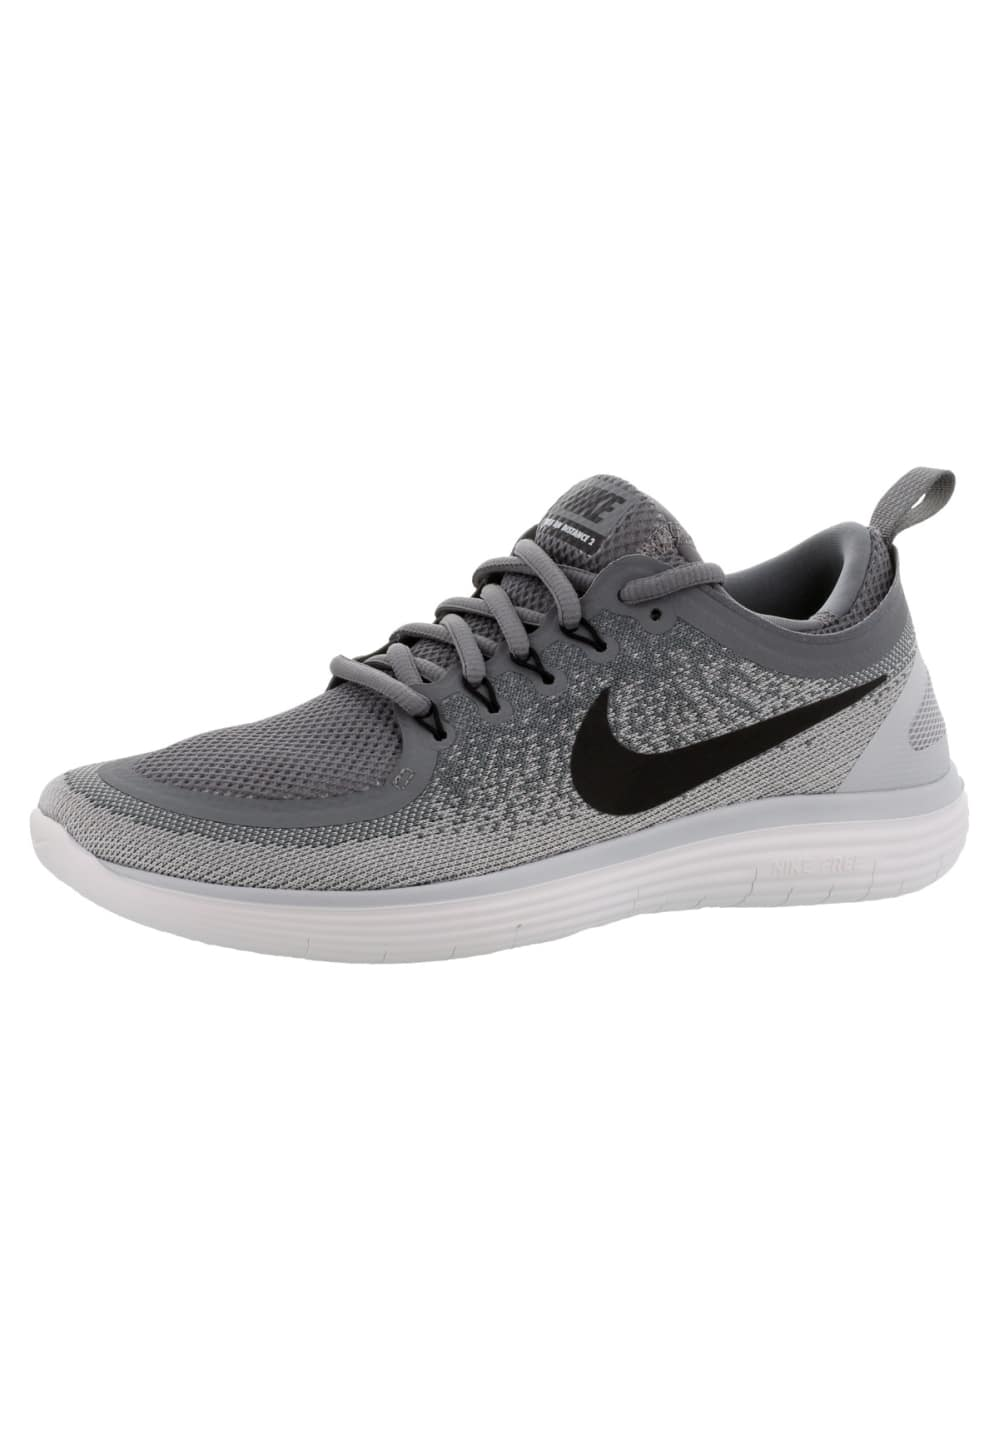 e2c427ba2ab1 Nike Free RN Distance 2 - Running shoes for Women - Grey